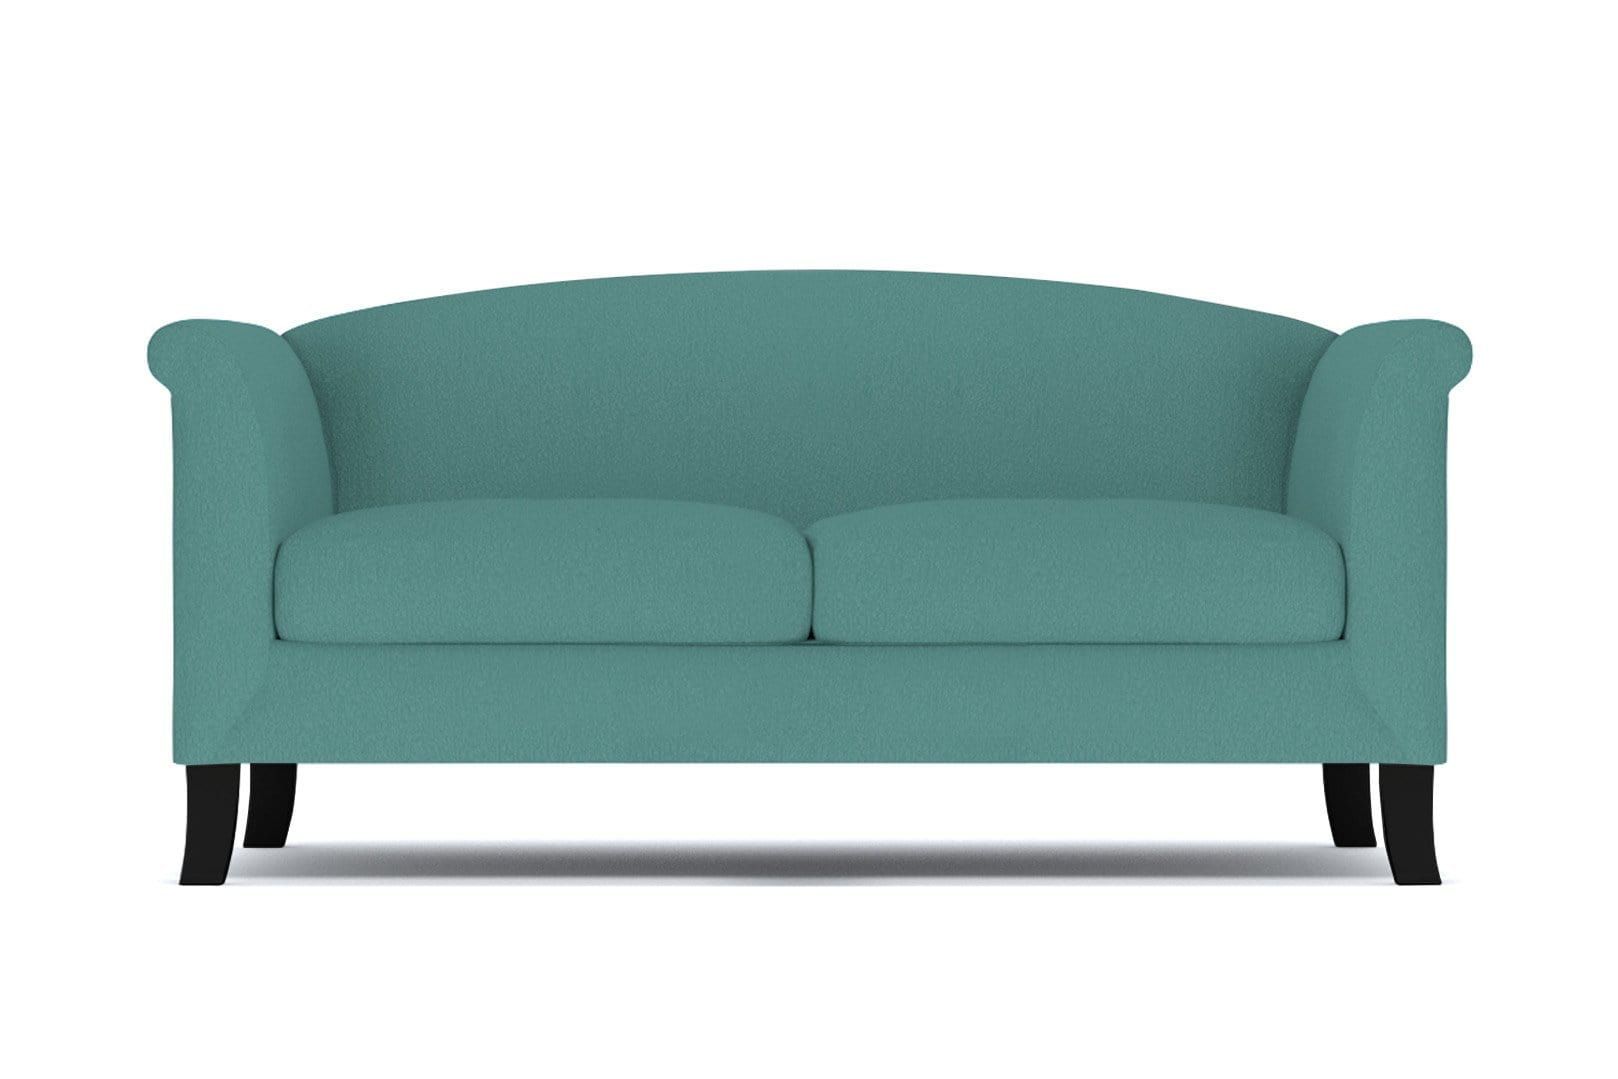 Albright_Apartment_Size_Sofa__Light_Blue___Small_Space_Modern_Couch_Made_in_the_USA__Sold_by_Apt2B